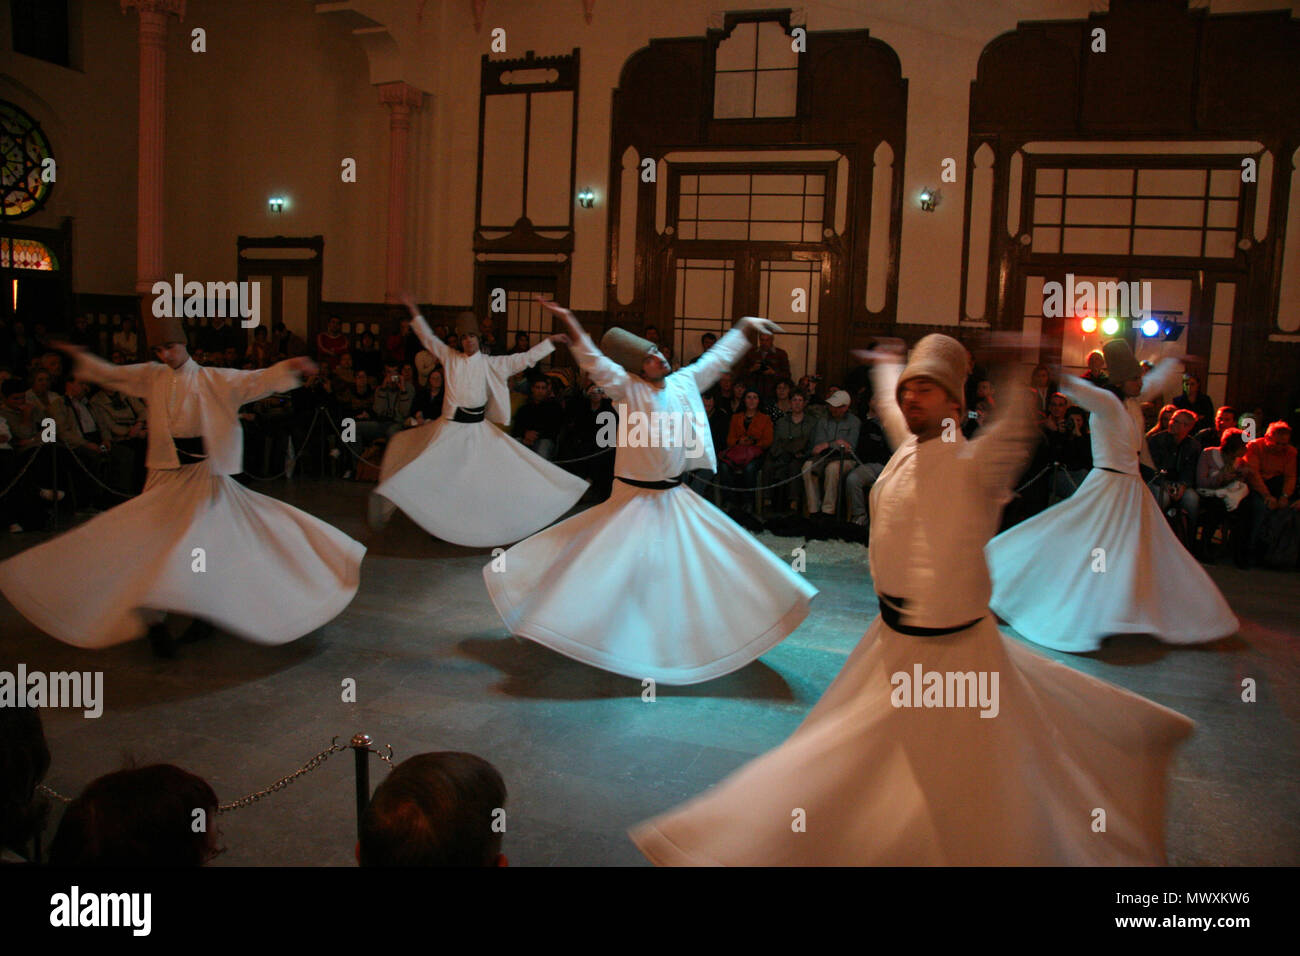 whirling dervishes dancing in traditional turkish dervish costume in istanbul Stock Photo